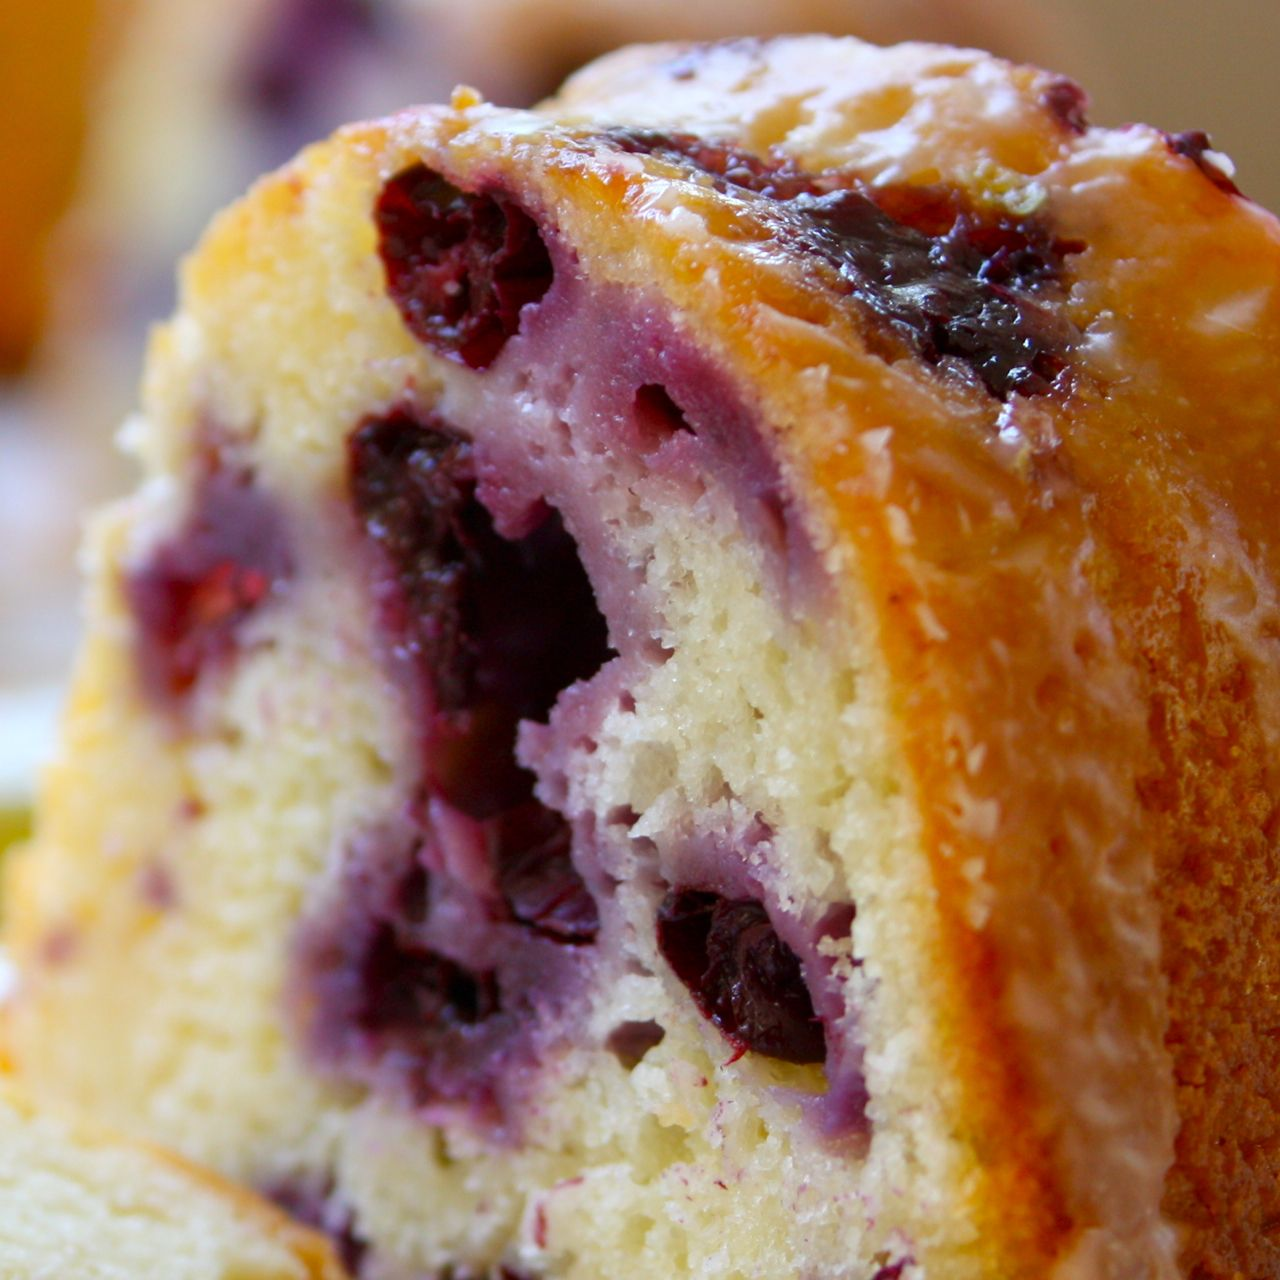 Low fat lemon blueberry cake